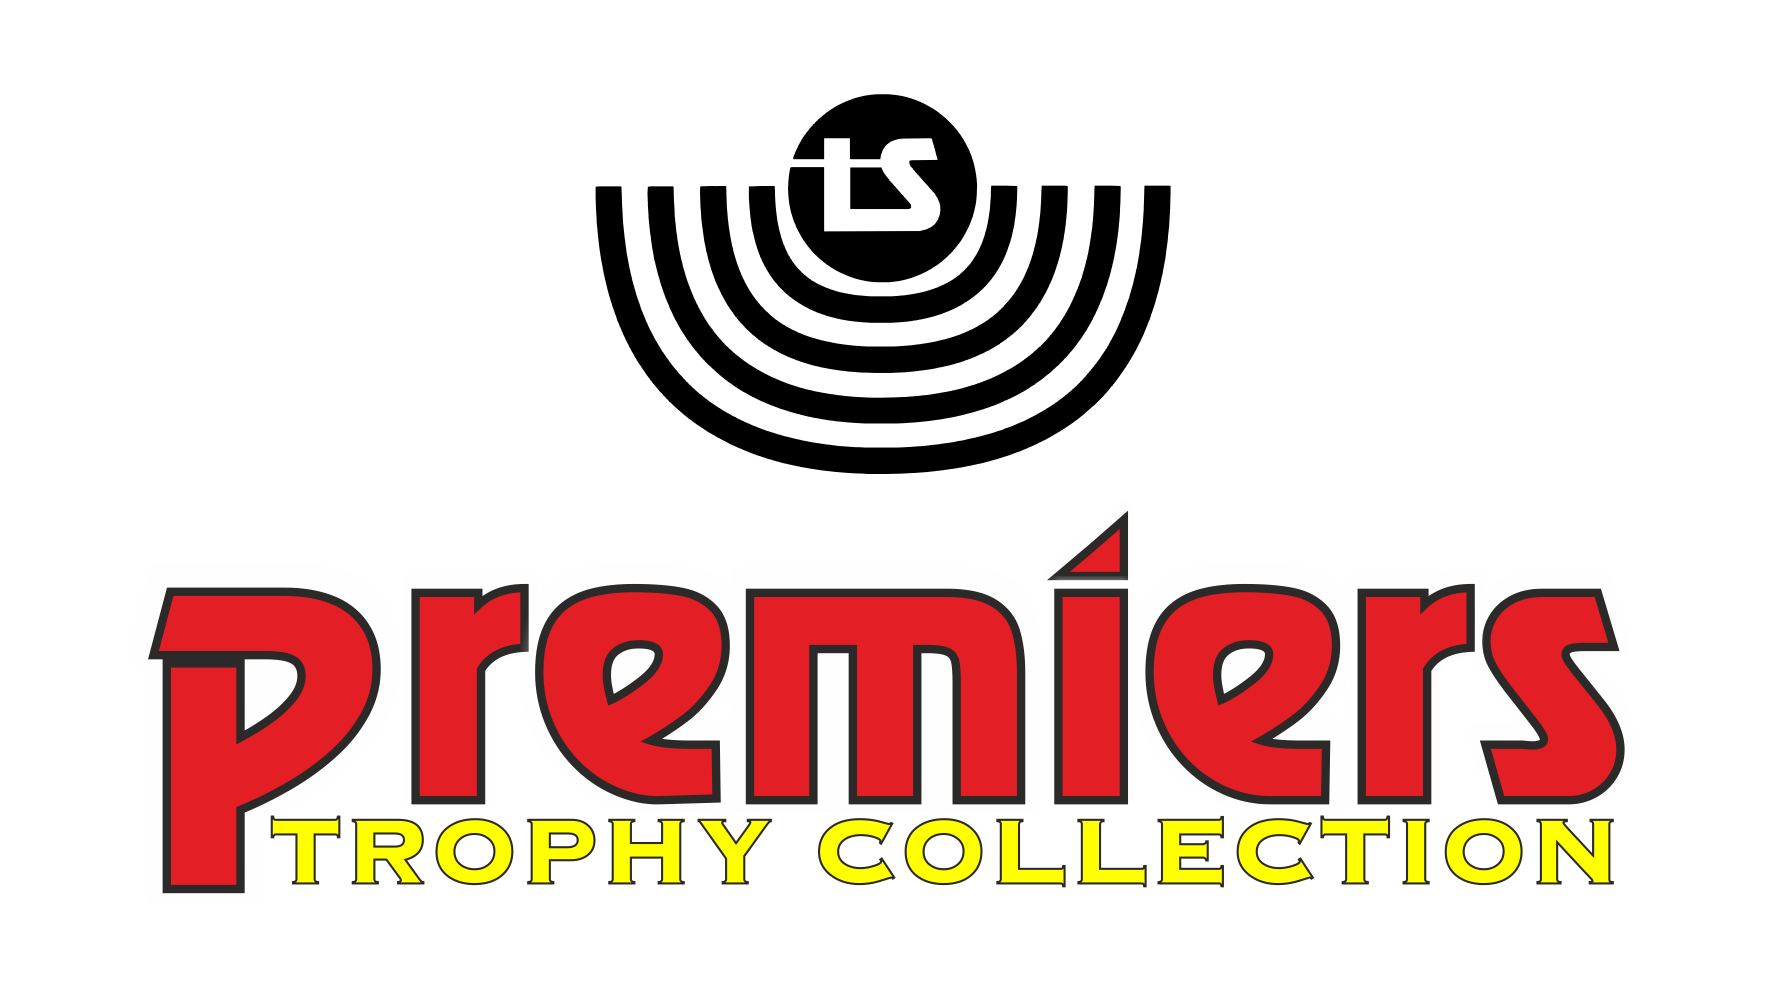 Premiers Trophy Collection